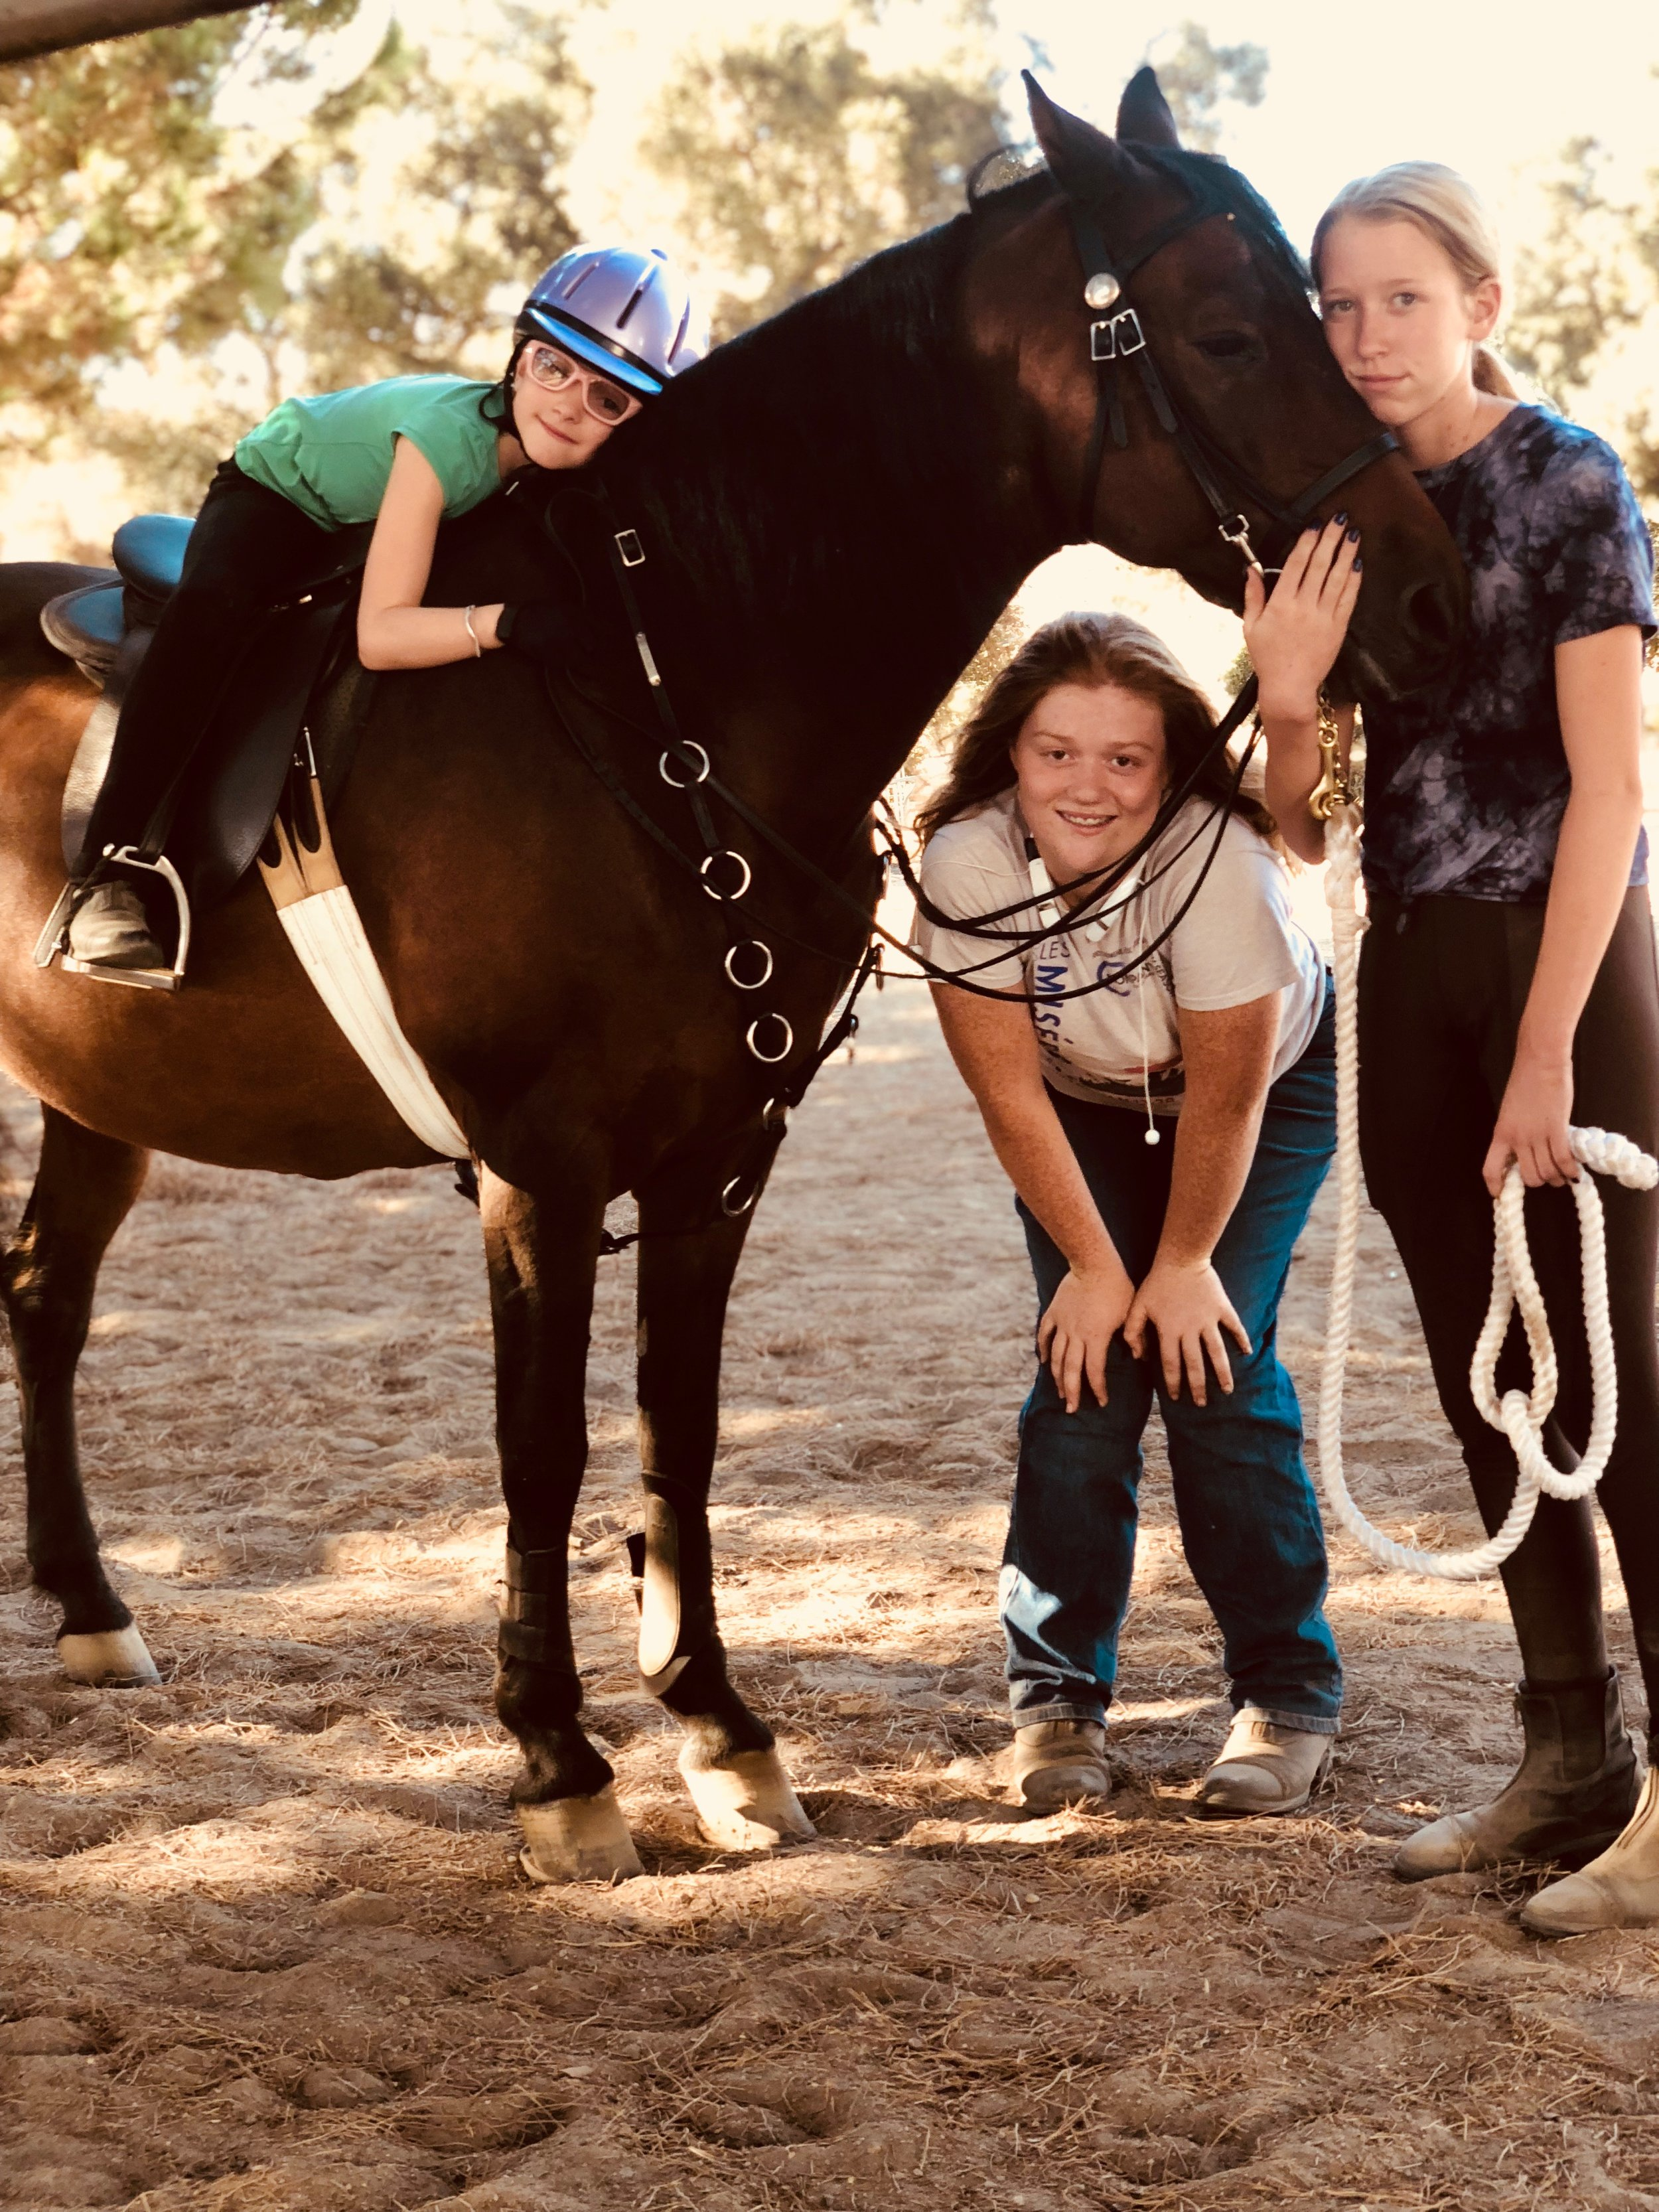 Win a week of Summer Horse Camp at Windsor Equestrian Center - Lakeside.